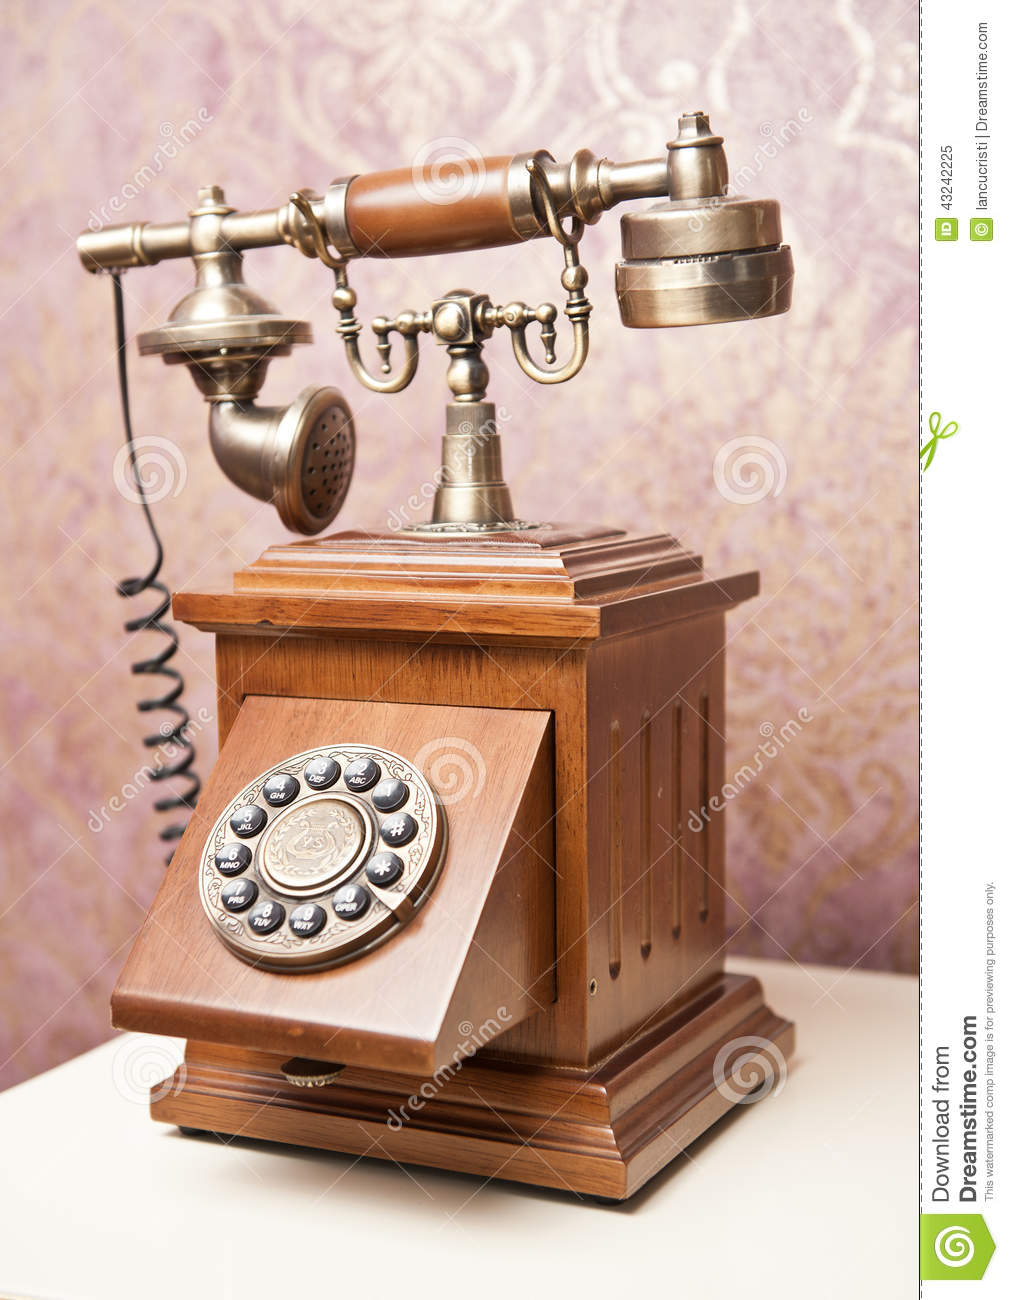 Old wooden phone vintage telephone on white table